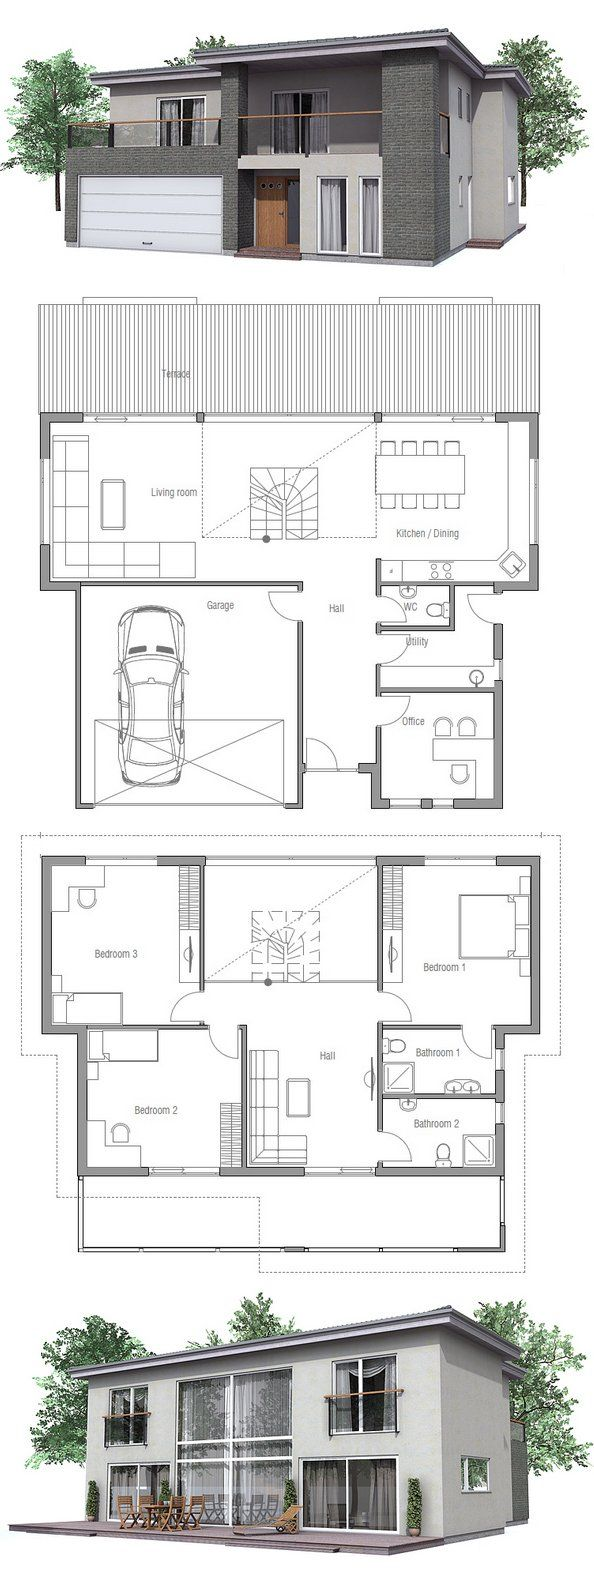 best 25 double garage ideas that you will like on pinterest modern house with three bedrooms and double garage floor plan from concepthome com